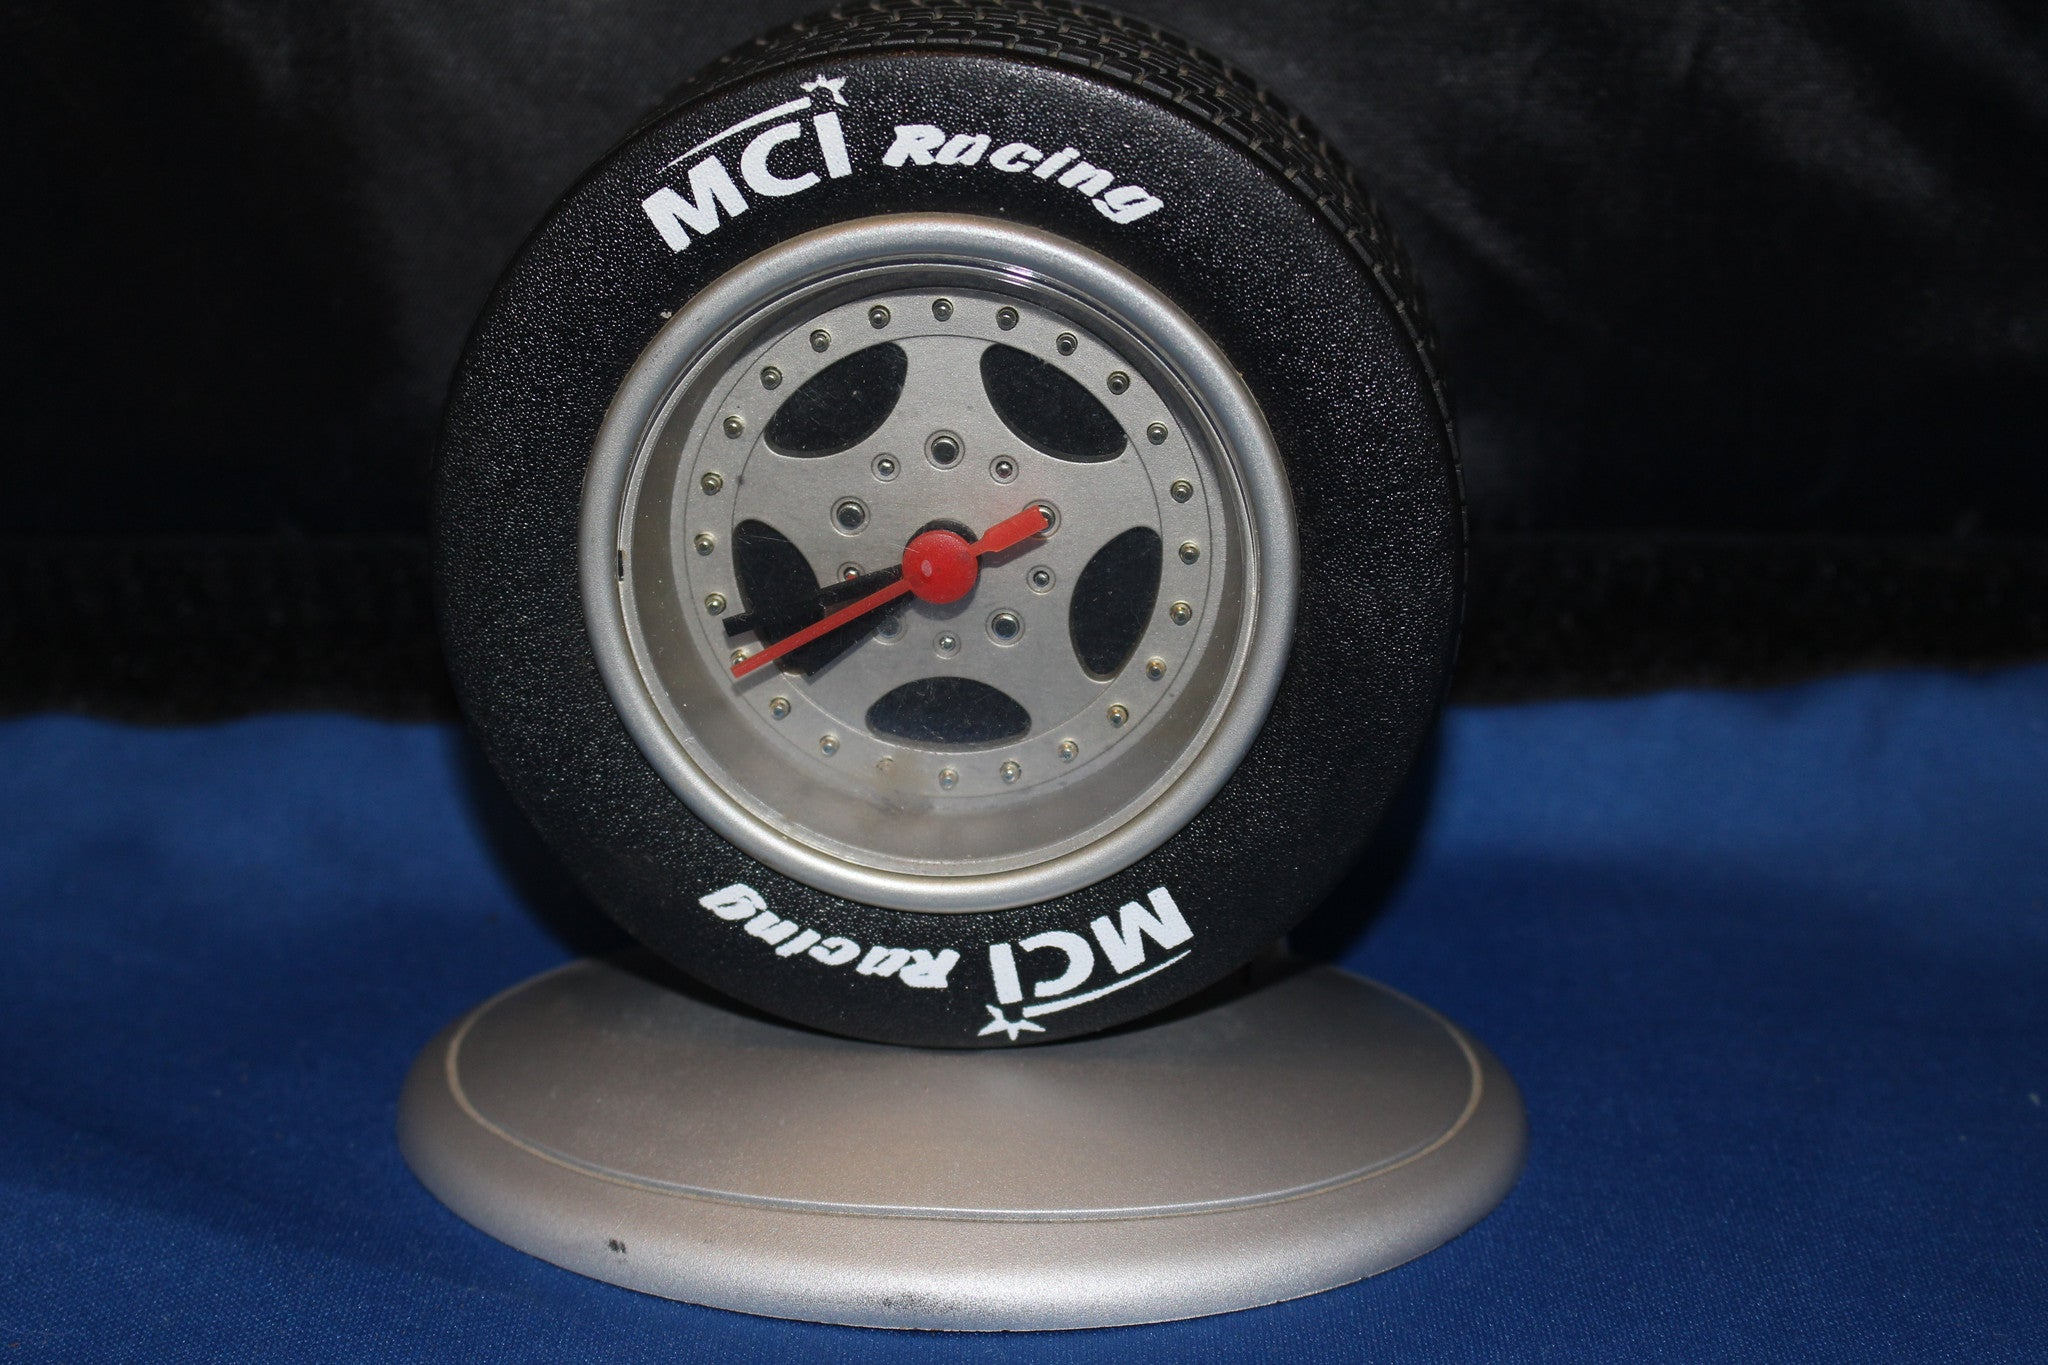 MCI Racing Tire Desk Clock - Vintage Indy Sports